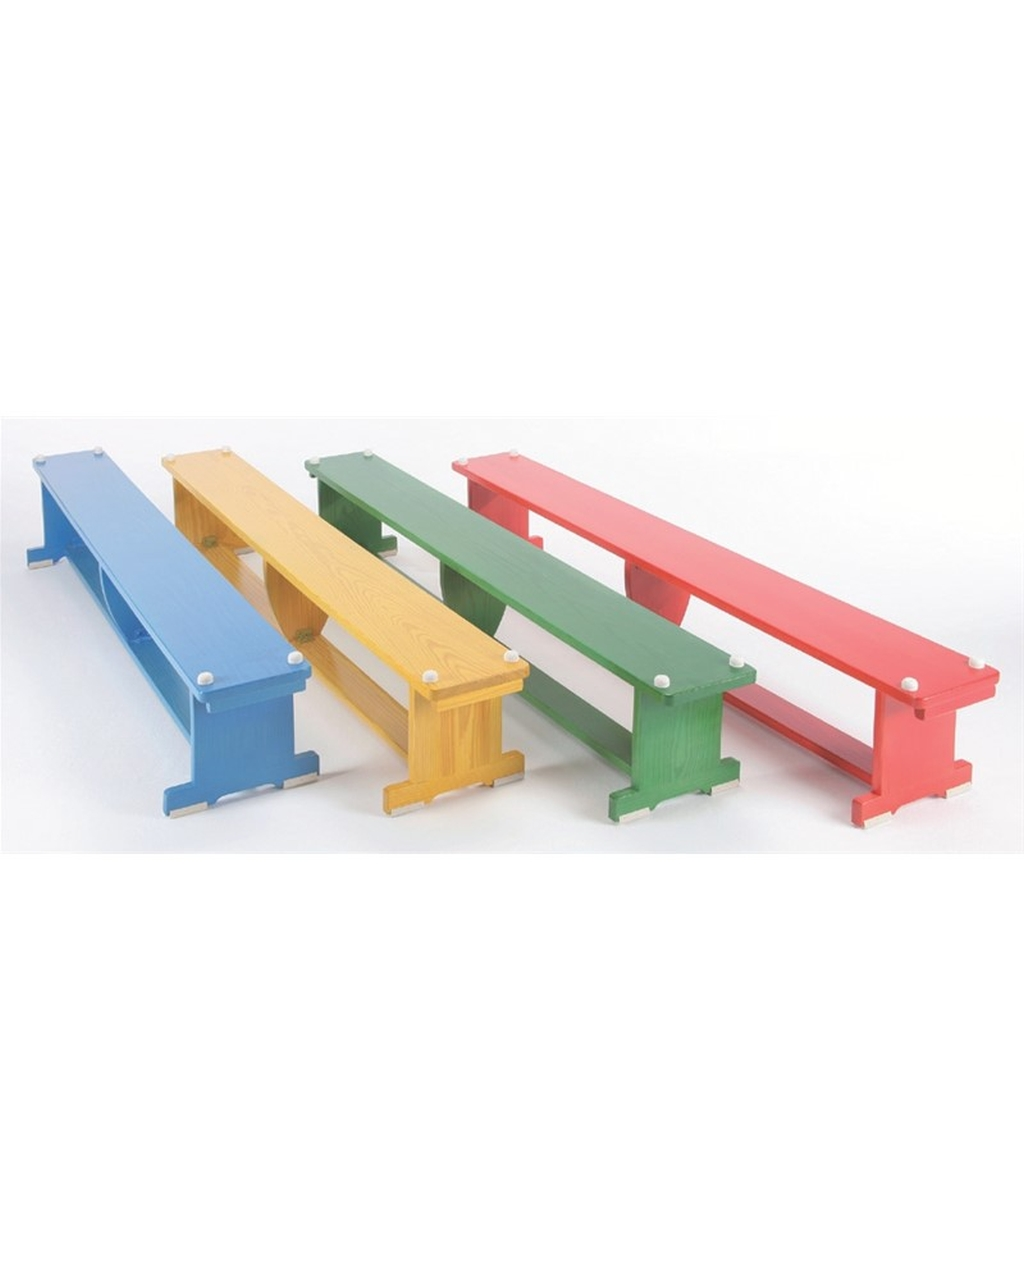 ActivBench - Set of 4